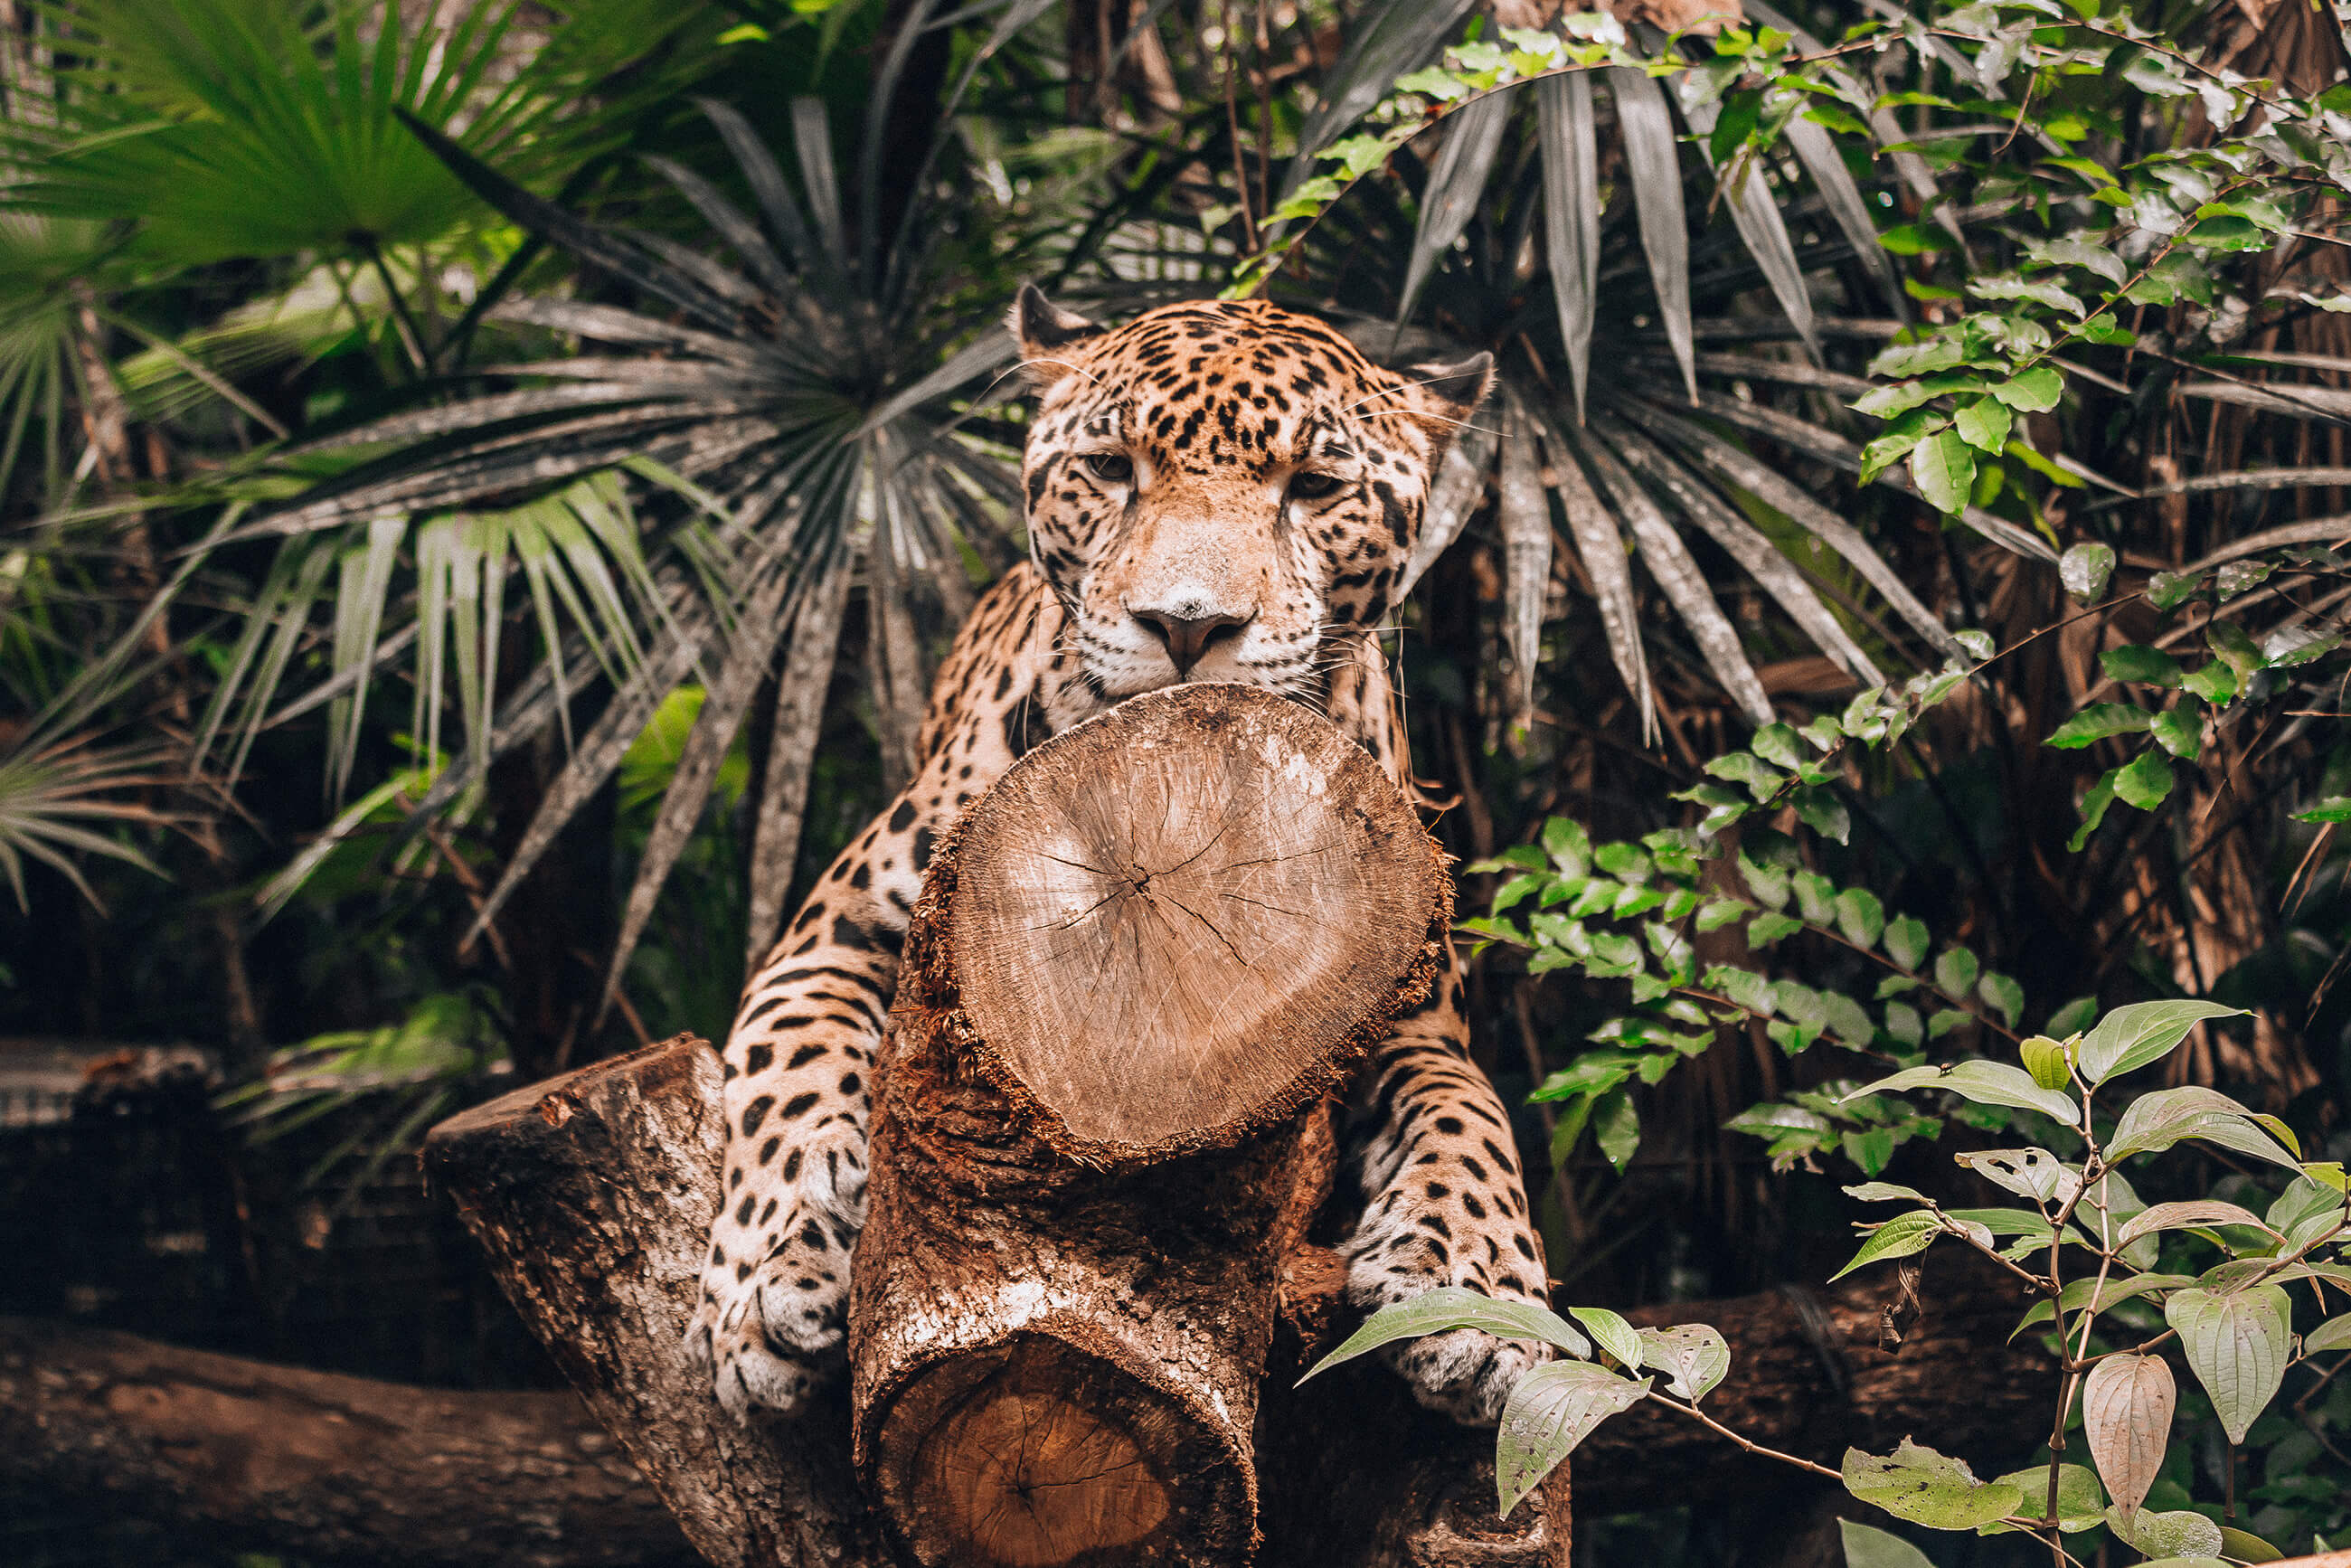 https://bubo.sk/uploads/galleries/7388/alenaspisakova_guatemala_jaguar_img_4902.jpg